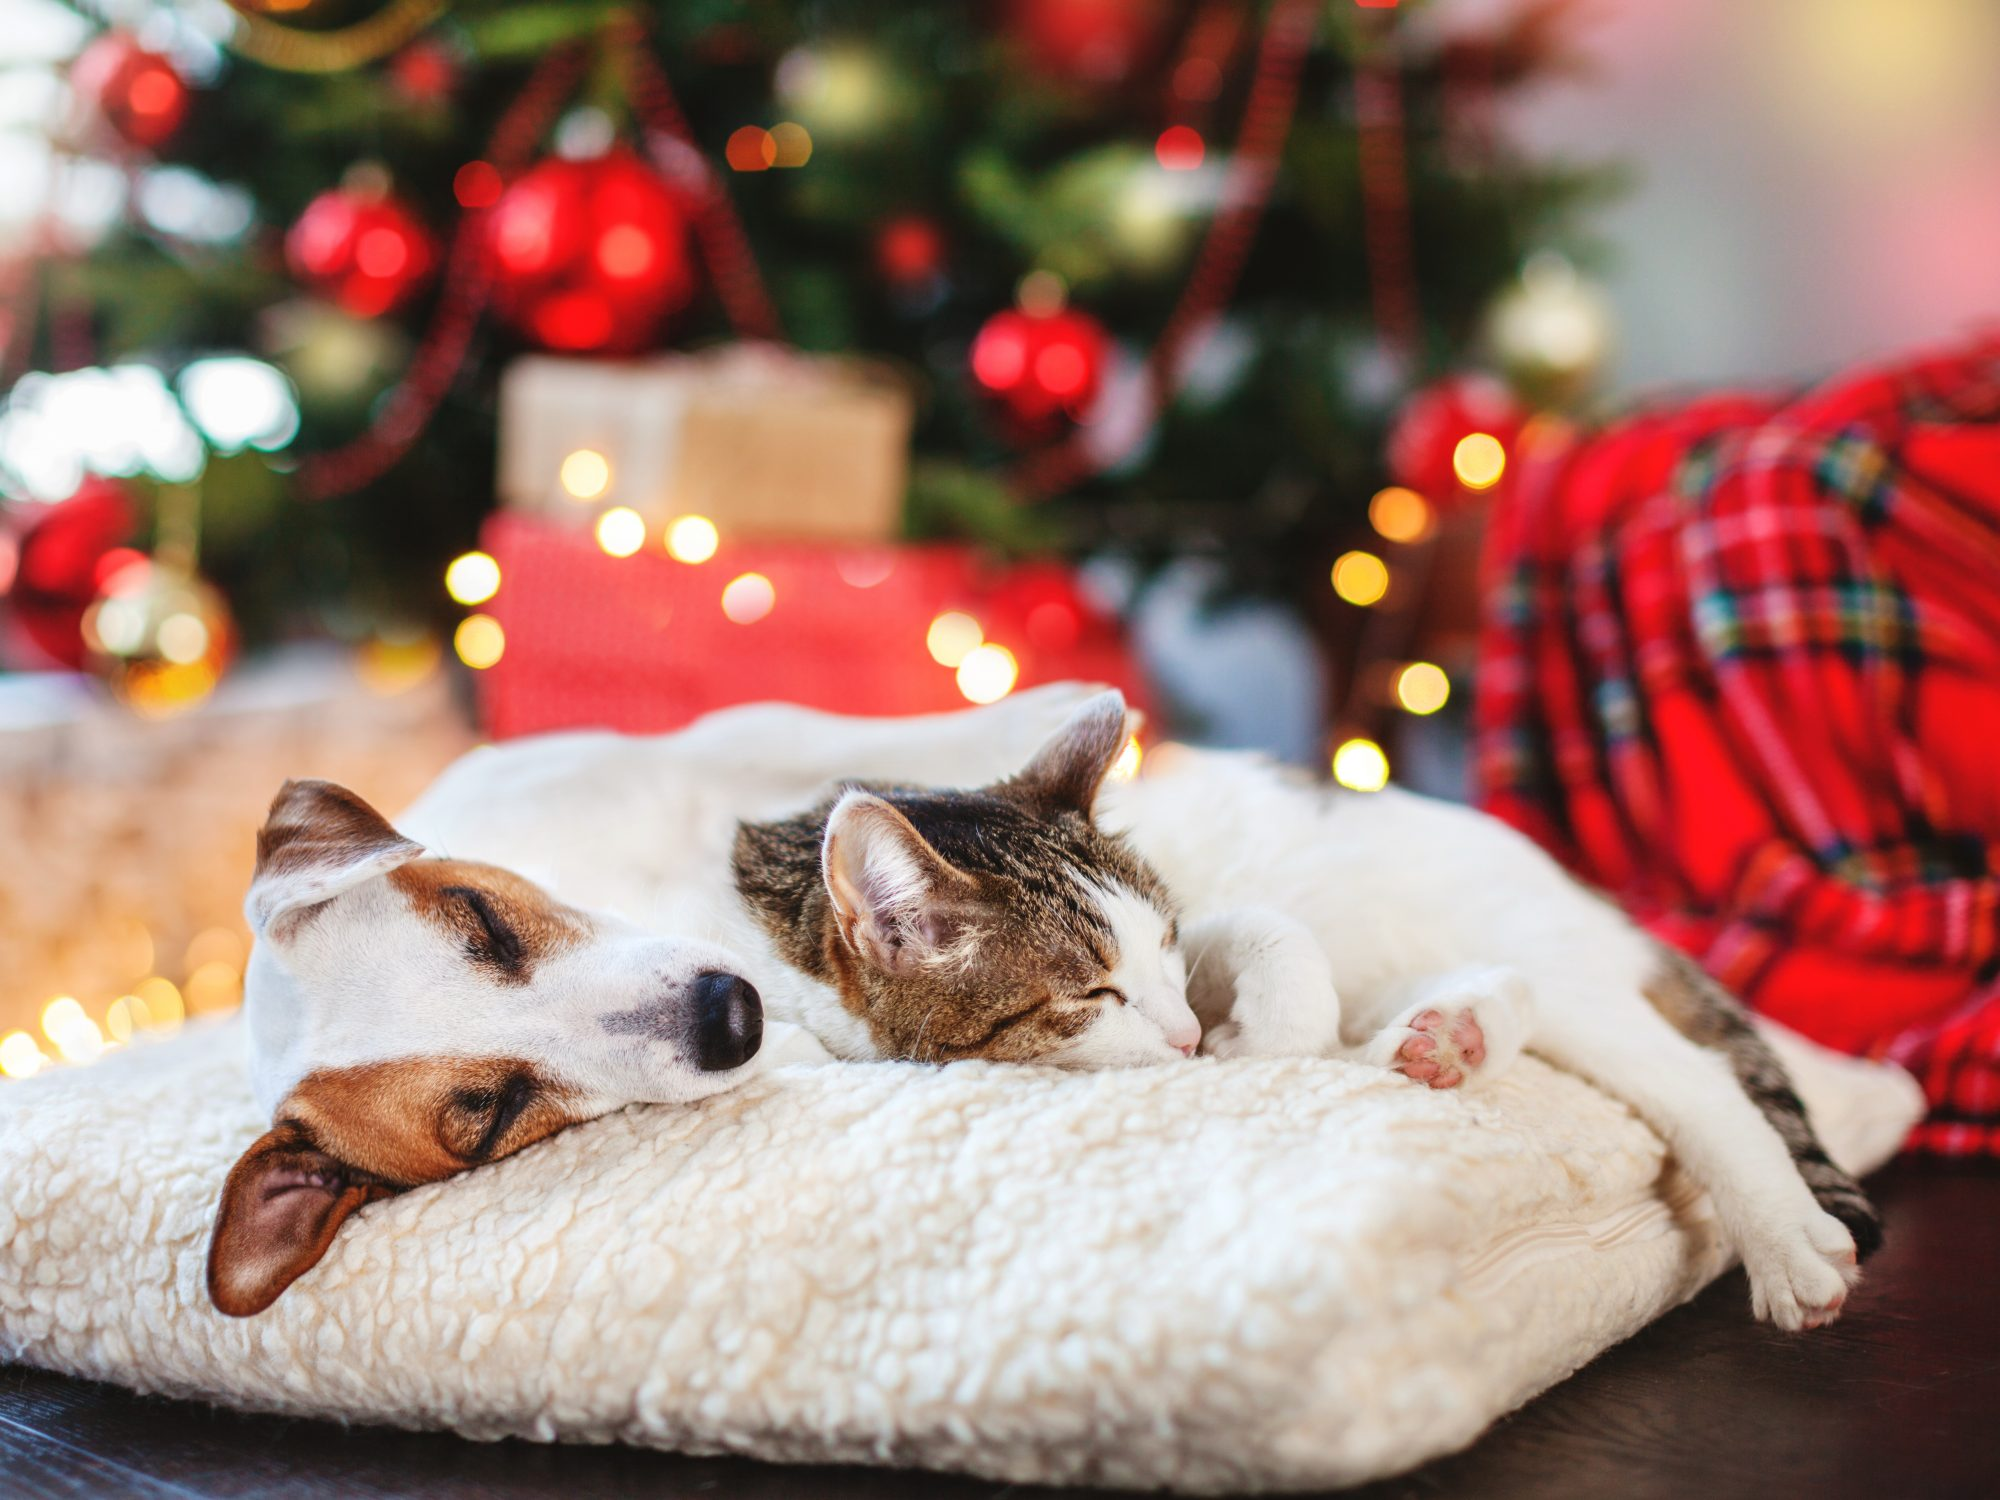 Keeping your pets safe doesn't have to be tricky. Follow Lincolnshire Animal Hospital's tips for a Pet Safe Holiday Season.